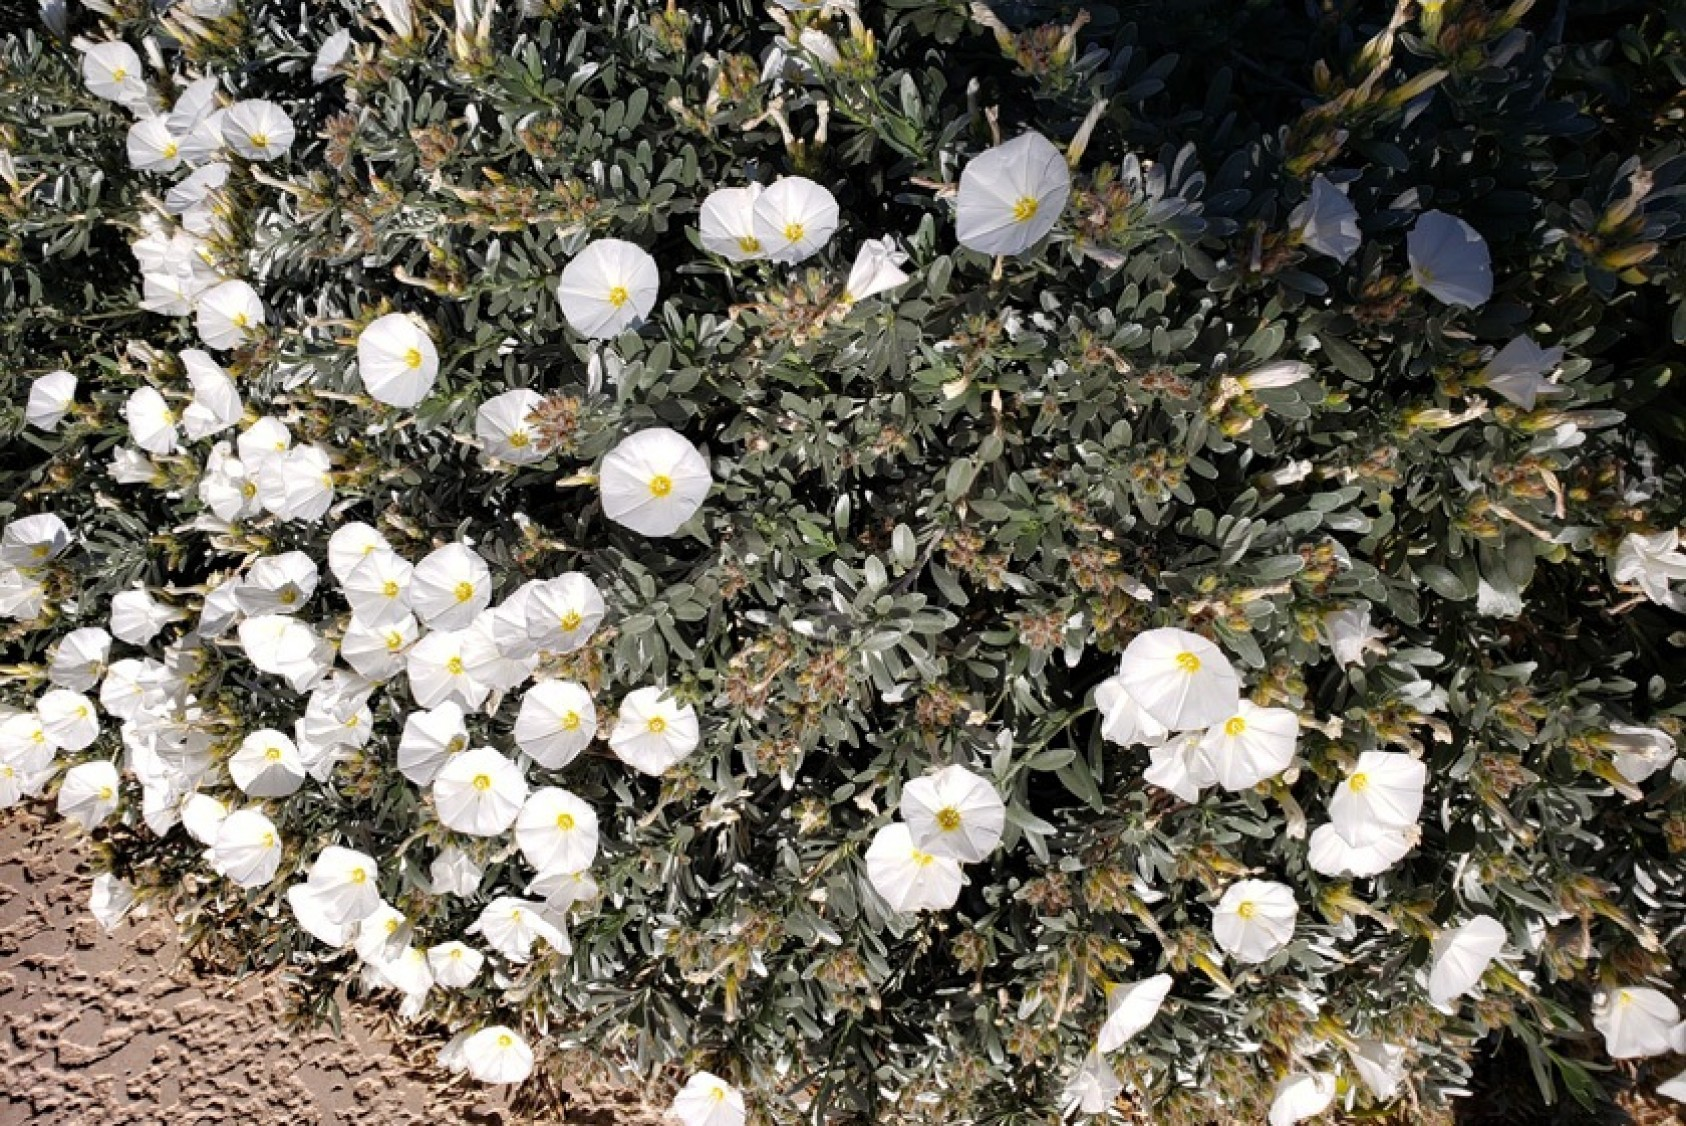 Conovolvulus, or silverbush or bindweed, found mostly in the coastal lands of Rodo's old homeland, Montenegro, and other western Balkan countries